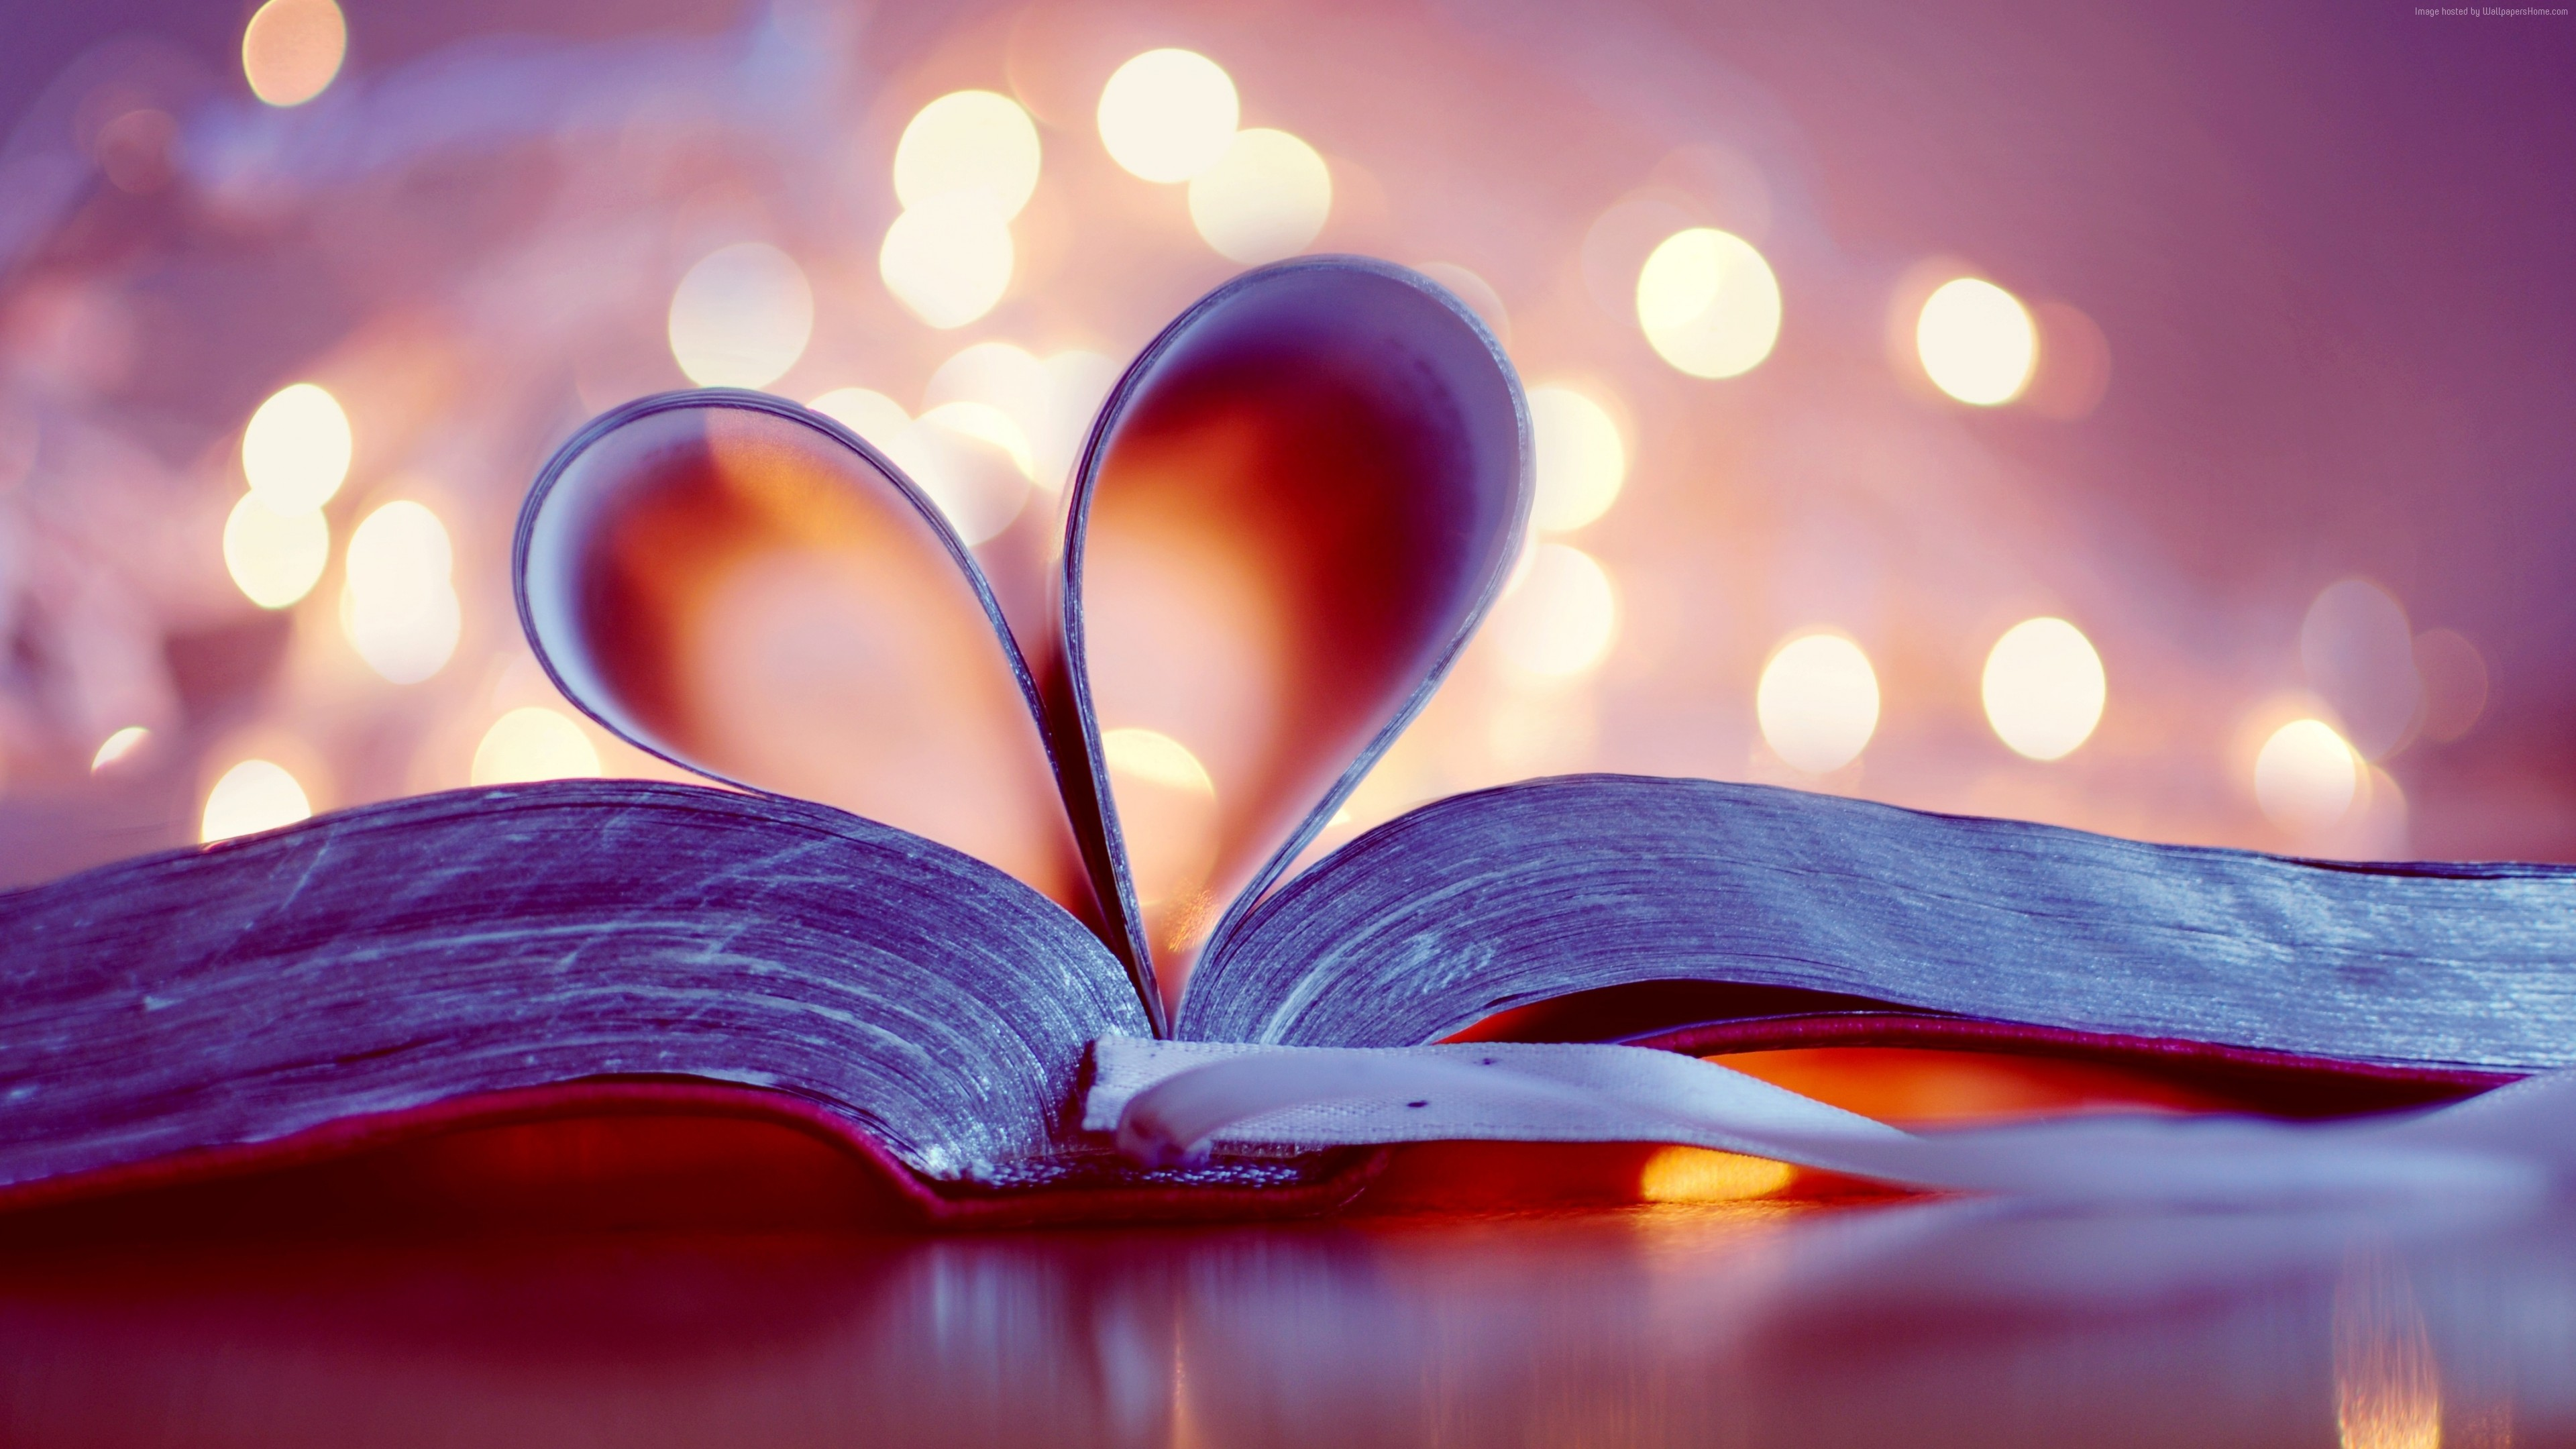 Stock Images love image, heart, book, 4k, Stock Images